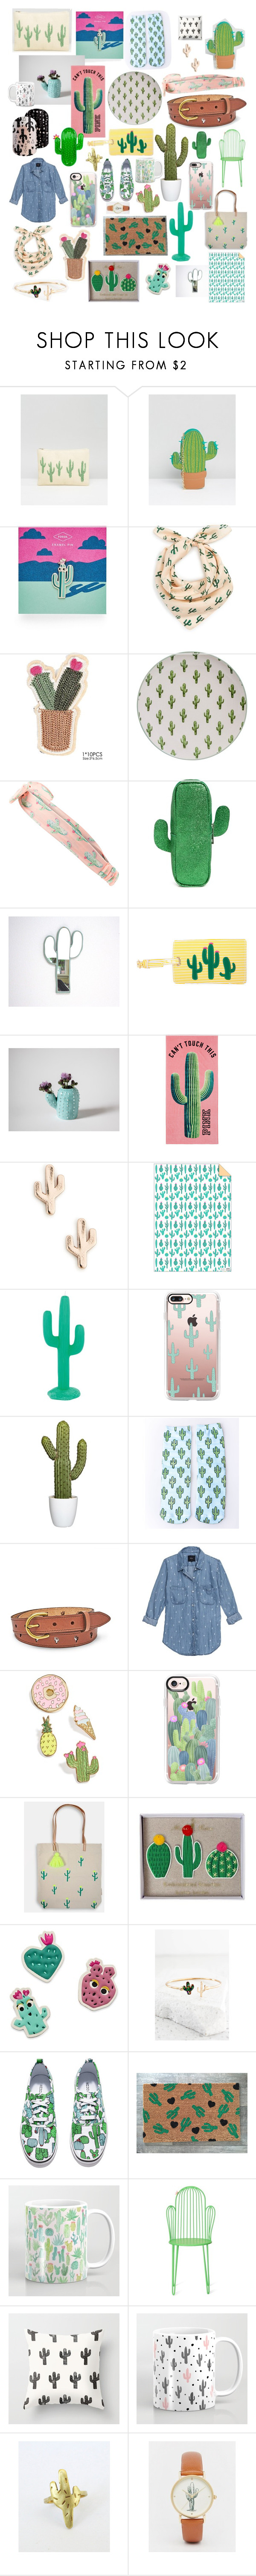 """Lookin' Sharp"" by heathersjams on Polyvore featuring South Beach, ASOS, FOSSIL, Sole Society, Bloomingville, Accessorize, Forever 21, Lolo, Mini Mi and Sunnylife"